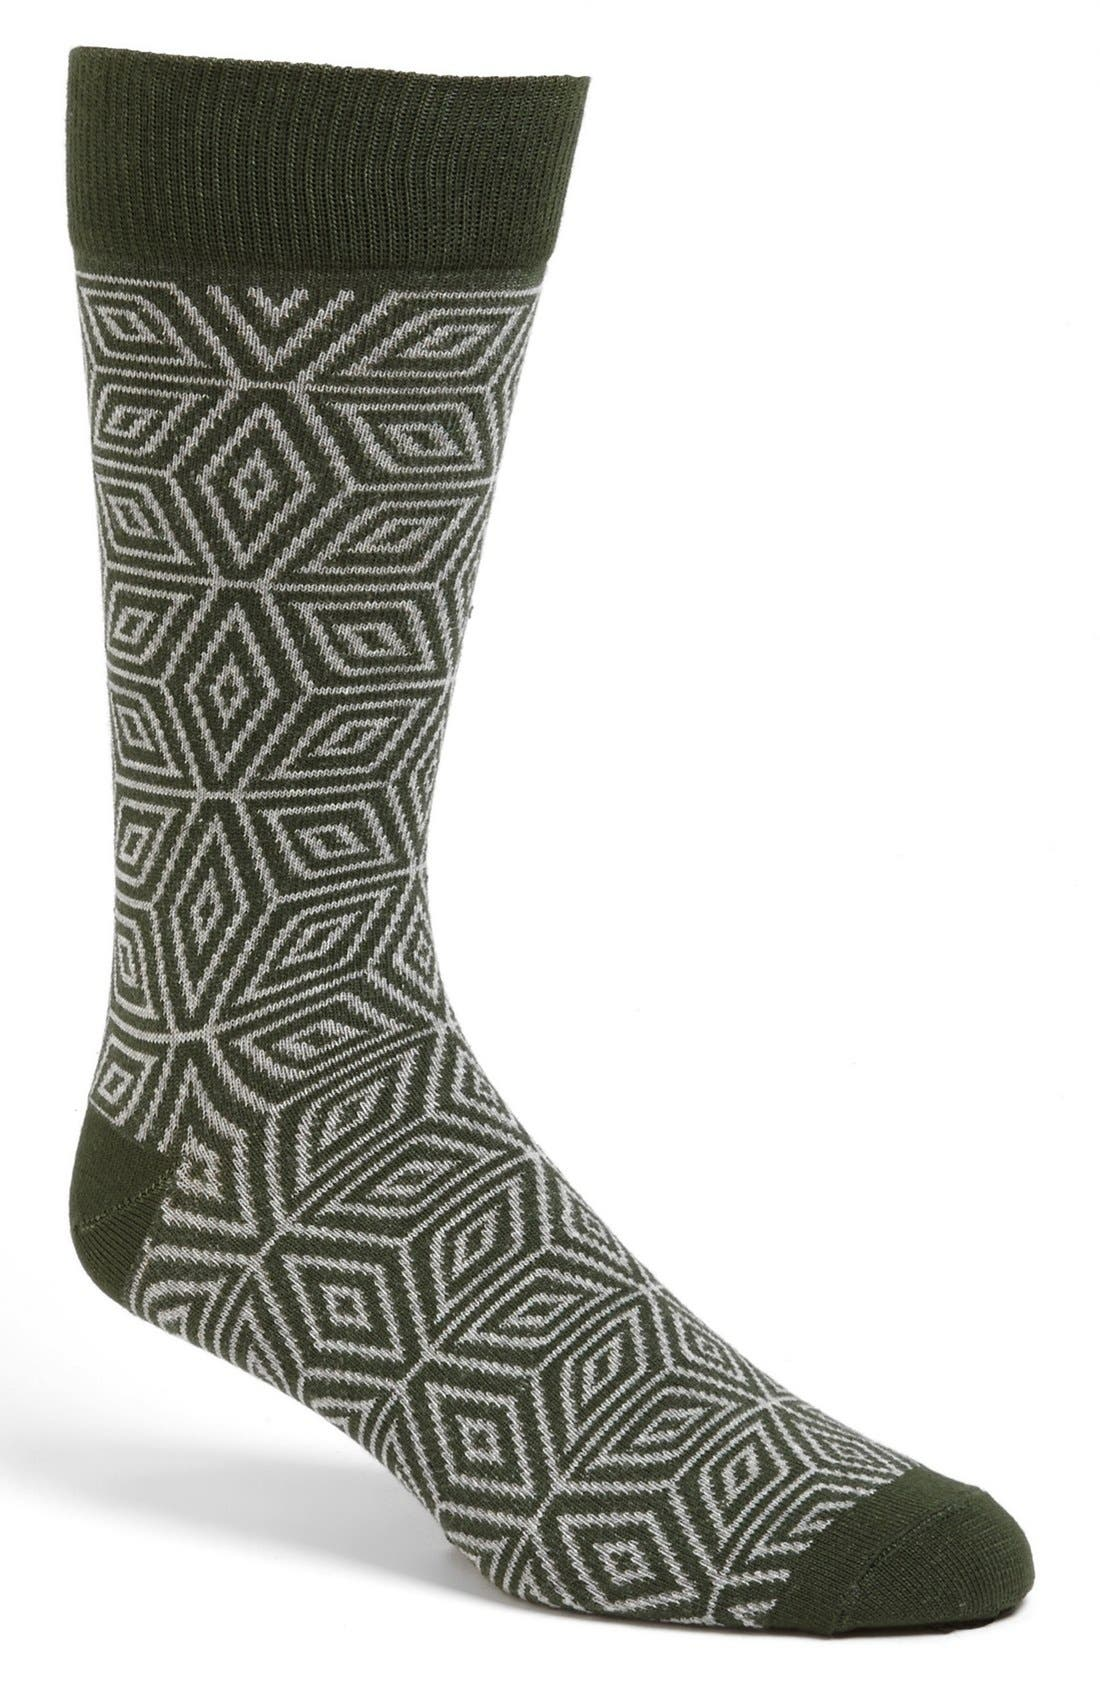 Main Image - Pact 'North Star' Socks